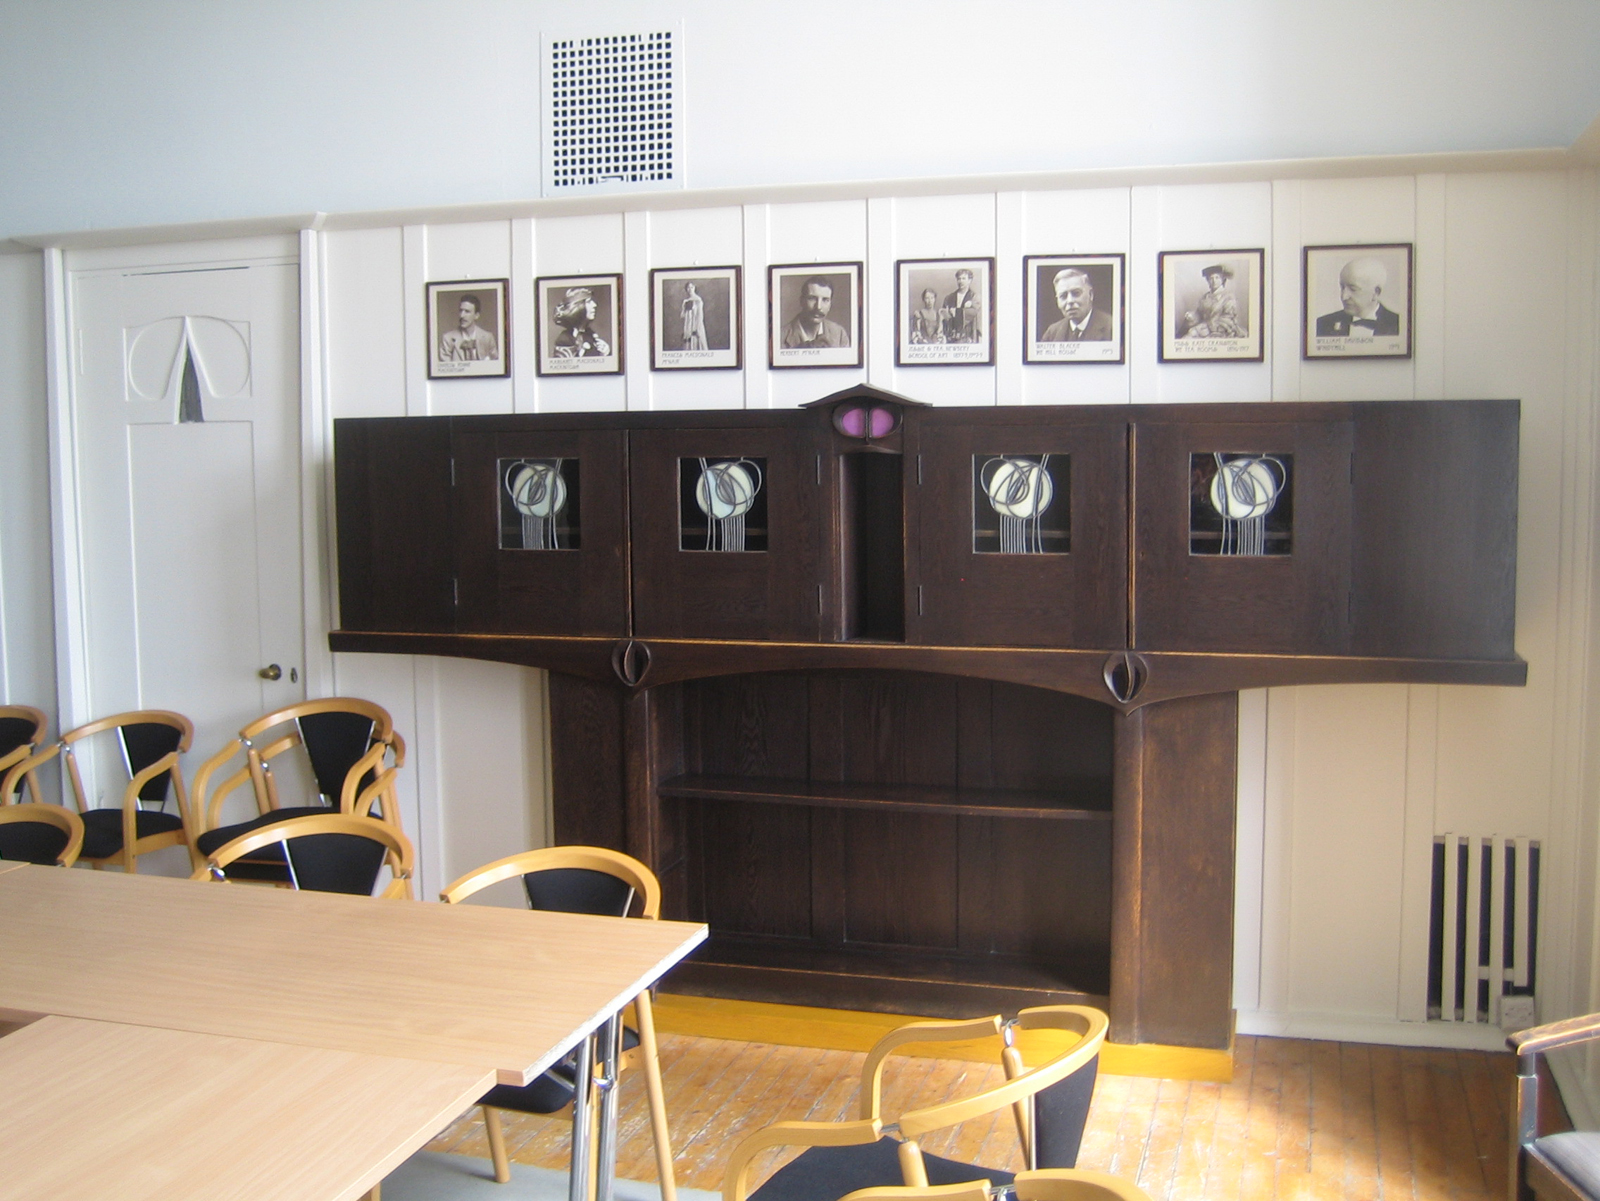 This hutch is simply too beautiful. The row of photos above charts famous alumnus and administrators at the Glasgow School of Art. Mackintosh (who attended as an architecture student) leads the pack.